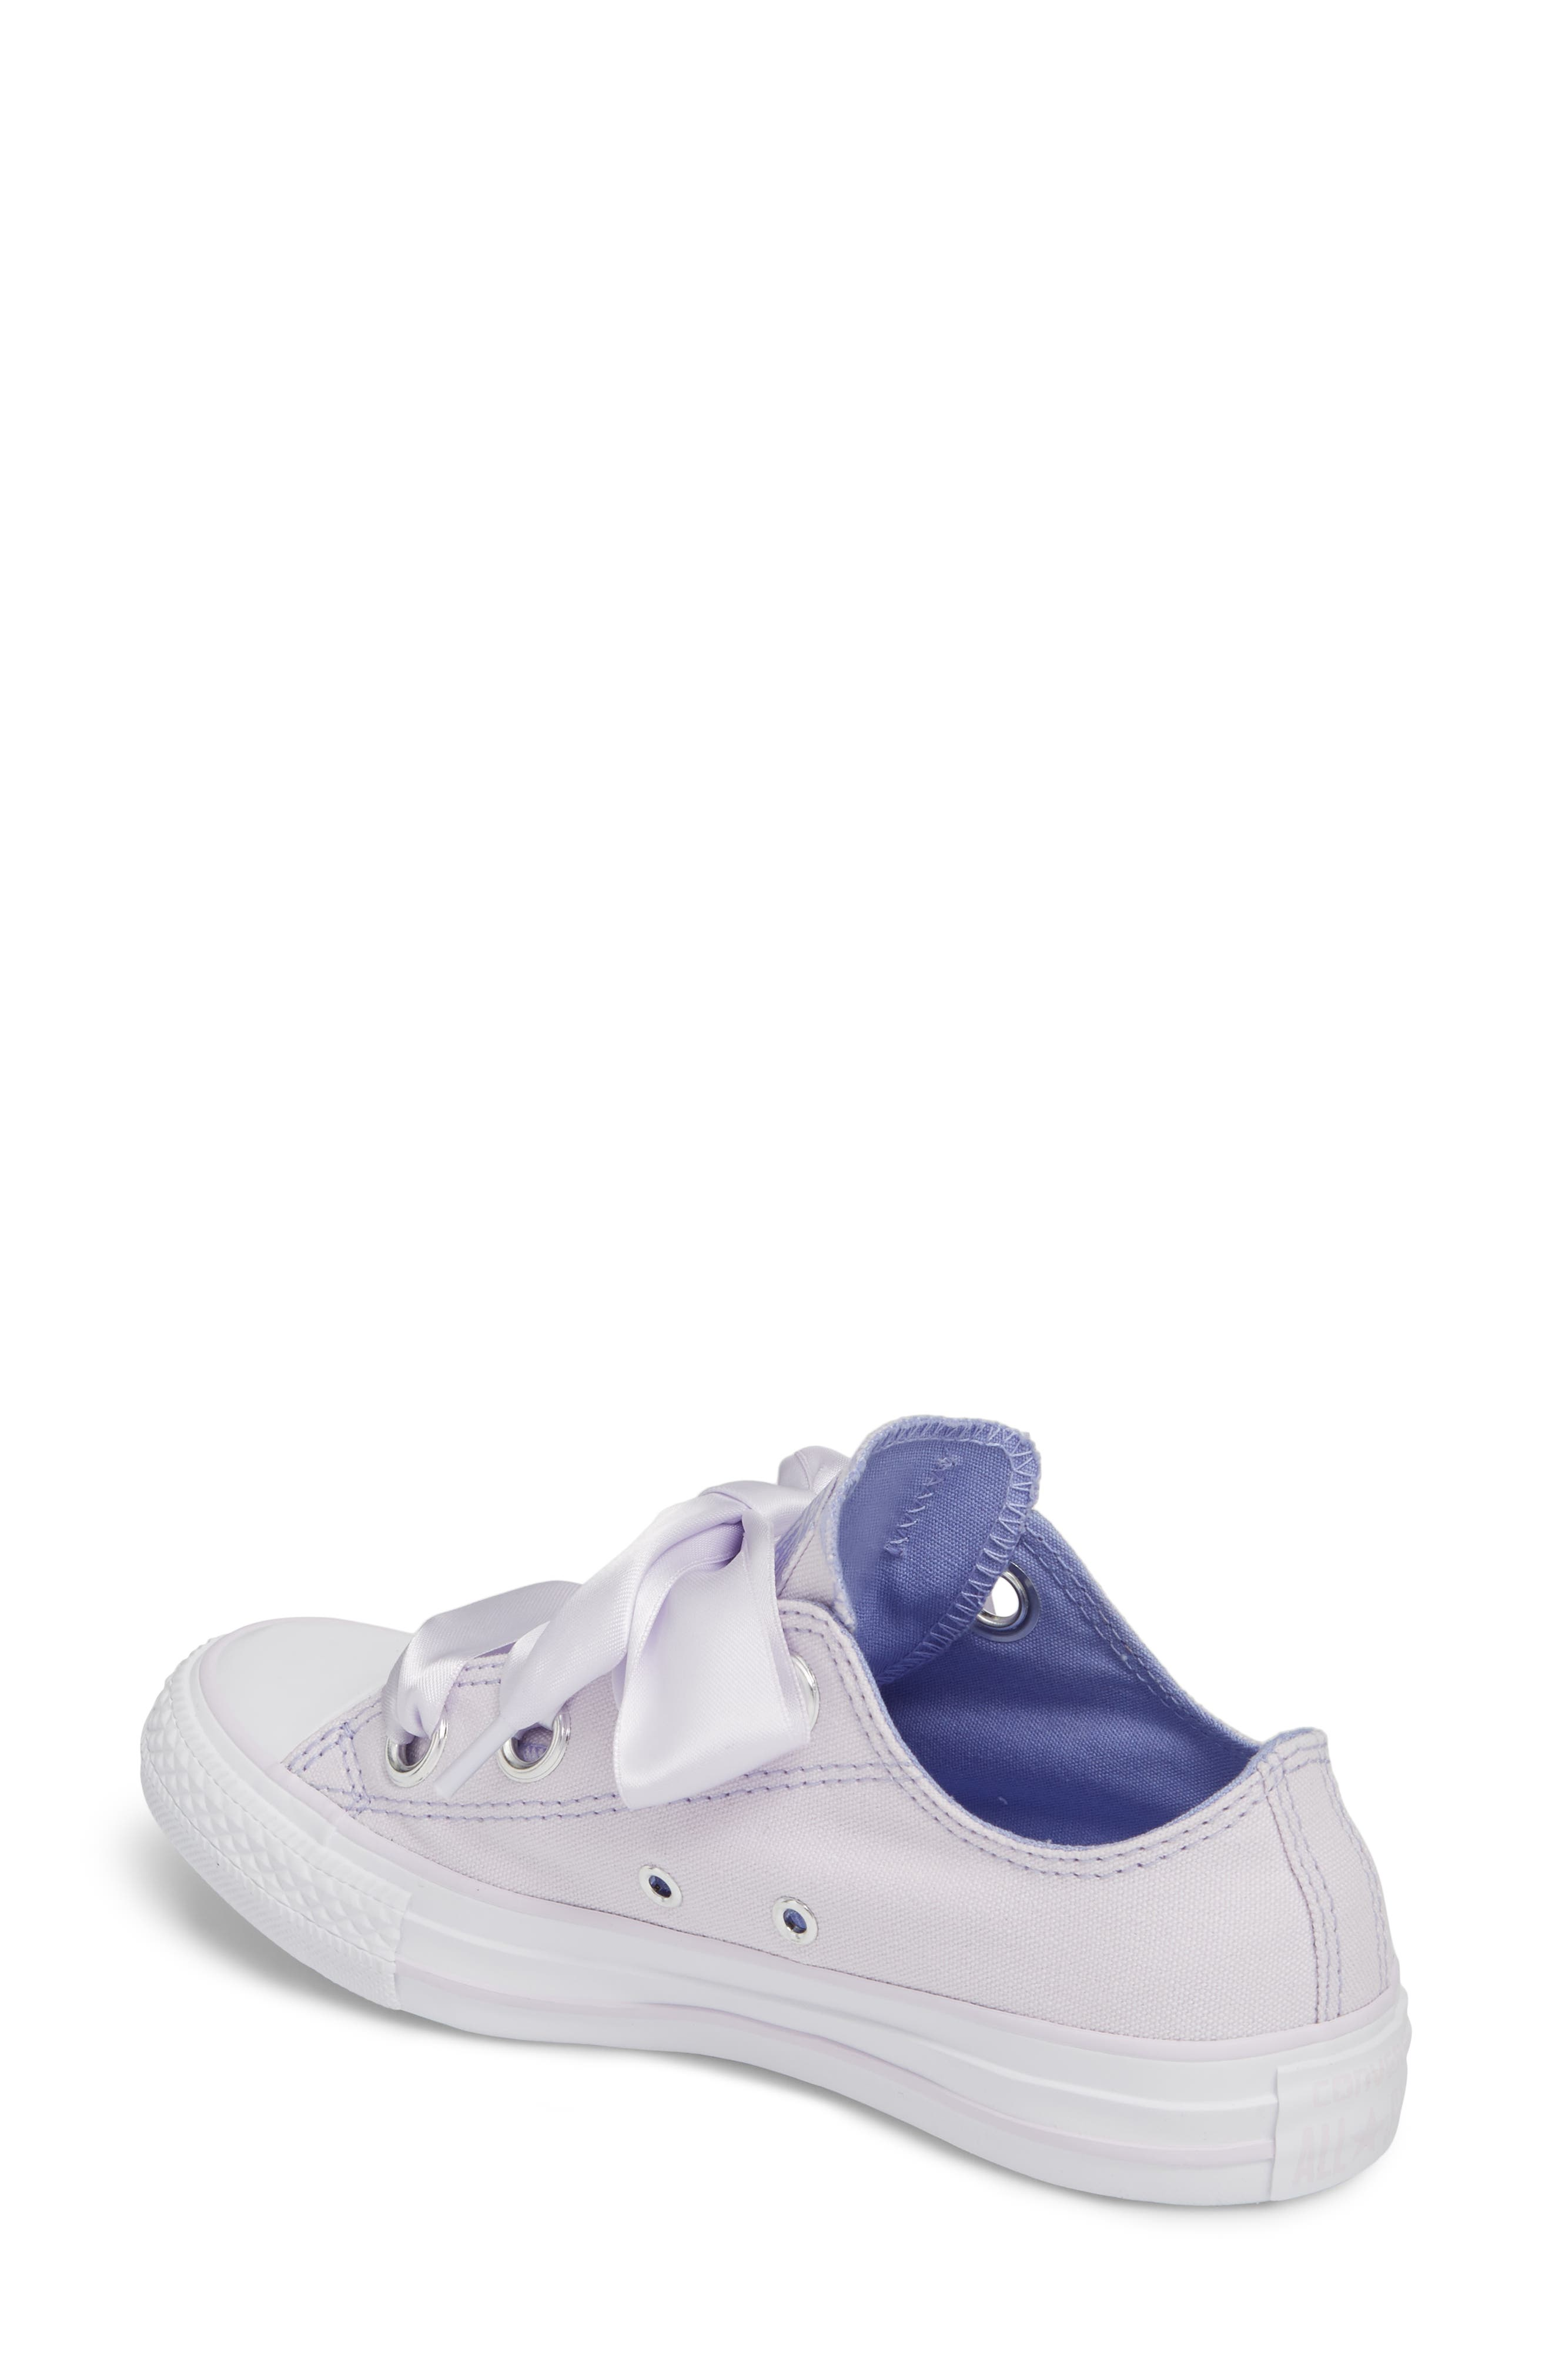 Chuck Taylor<sup>®</sup> All Star<sup>®</sup> Big Eyelet Ox Sneaker,                             Alternate thumbnail 8, color,